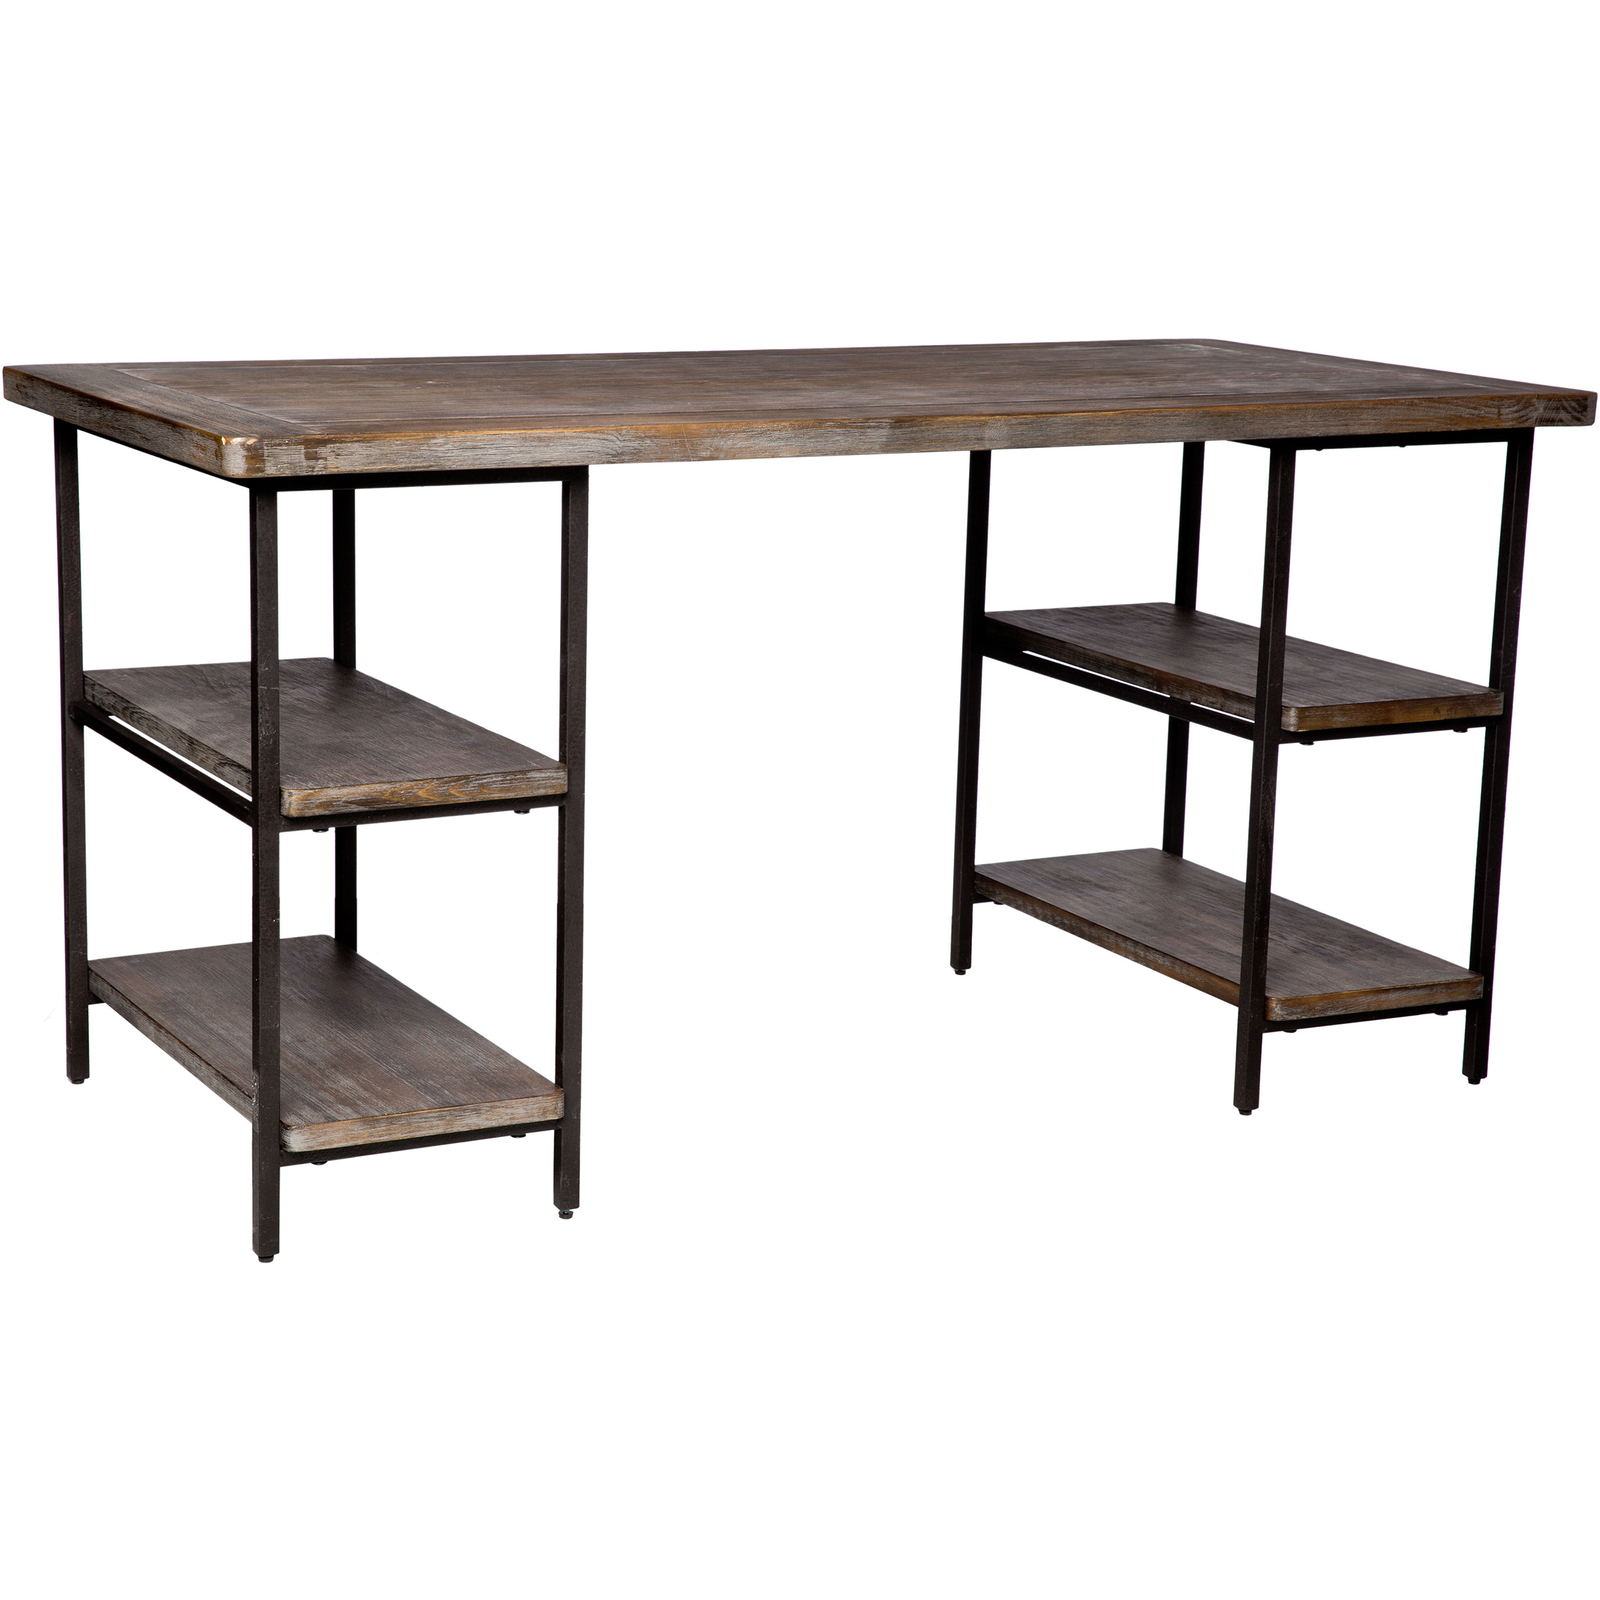 Ash Kitchen Cabinets Wood Metal Office Desk Computer Writing Shelves Rustic